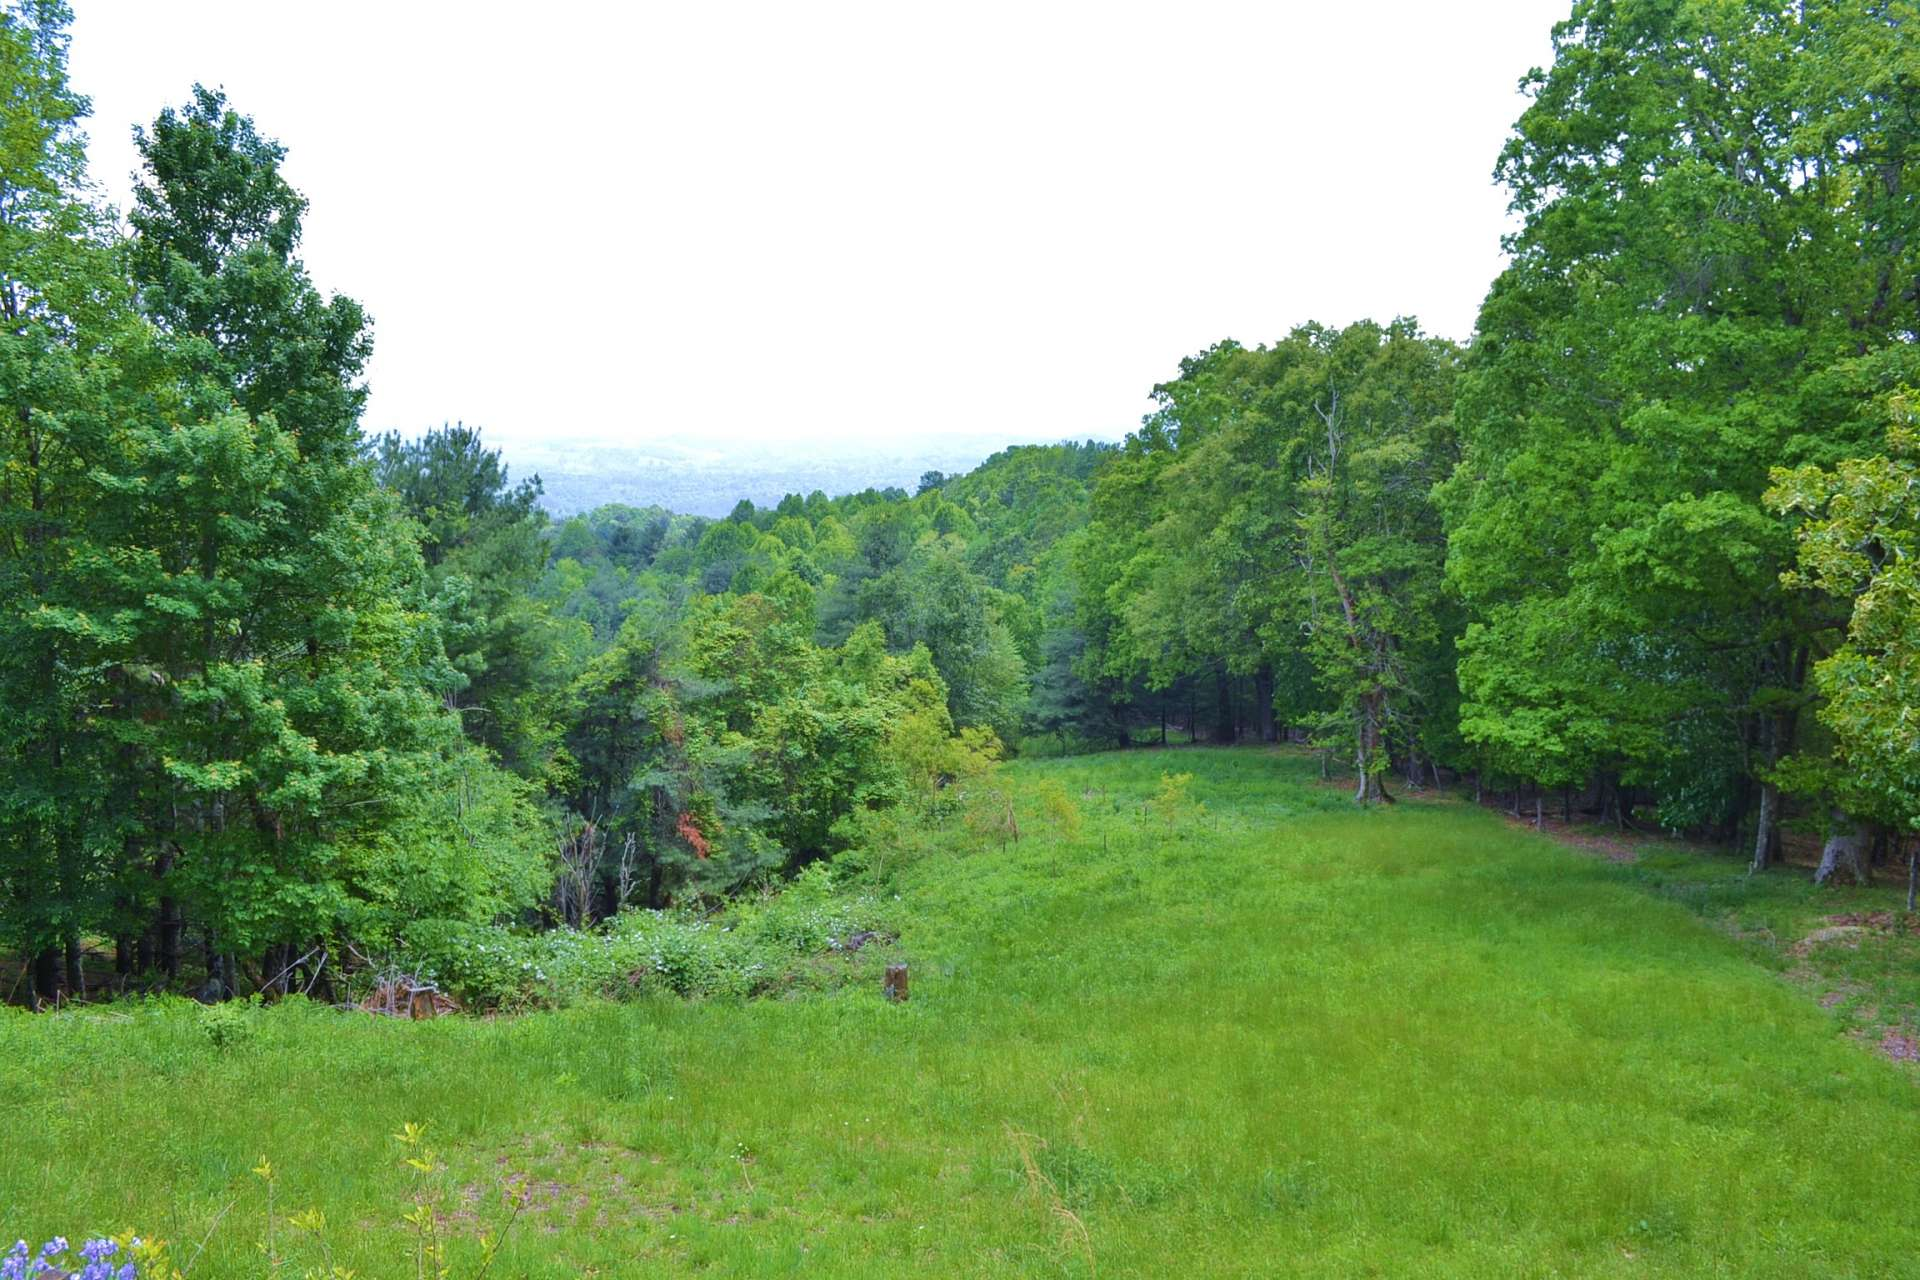 The land features plenty of open area for gardening or play. Surrounded by hardwoods, evergreens, and mountain foliage, you will enjoy watching the wildlife make routine visits to the property.